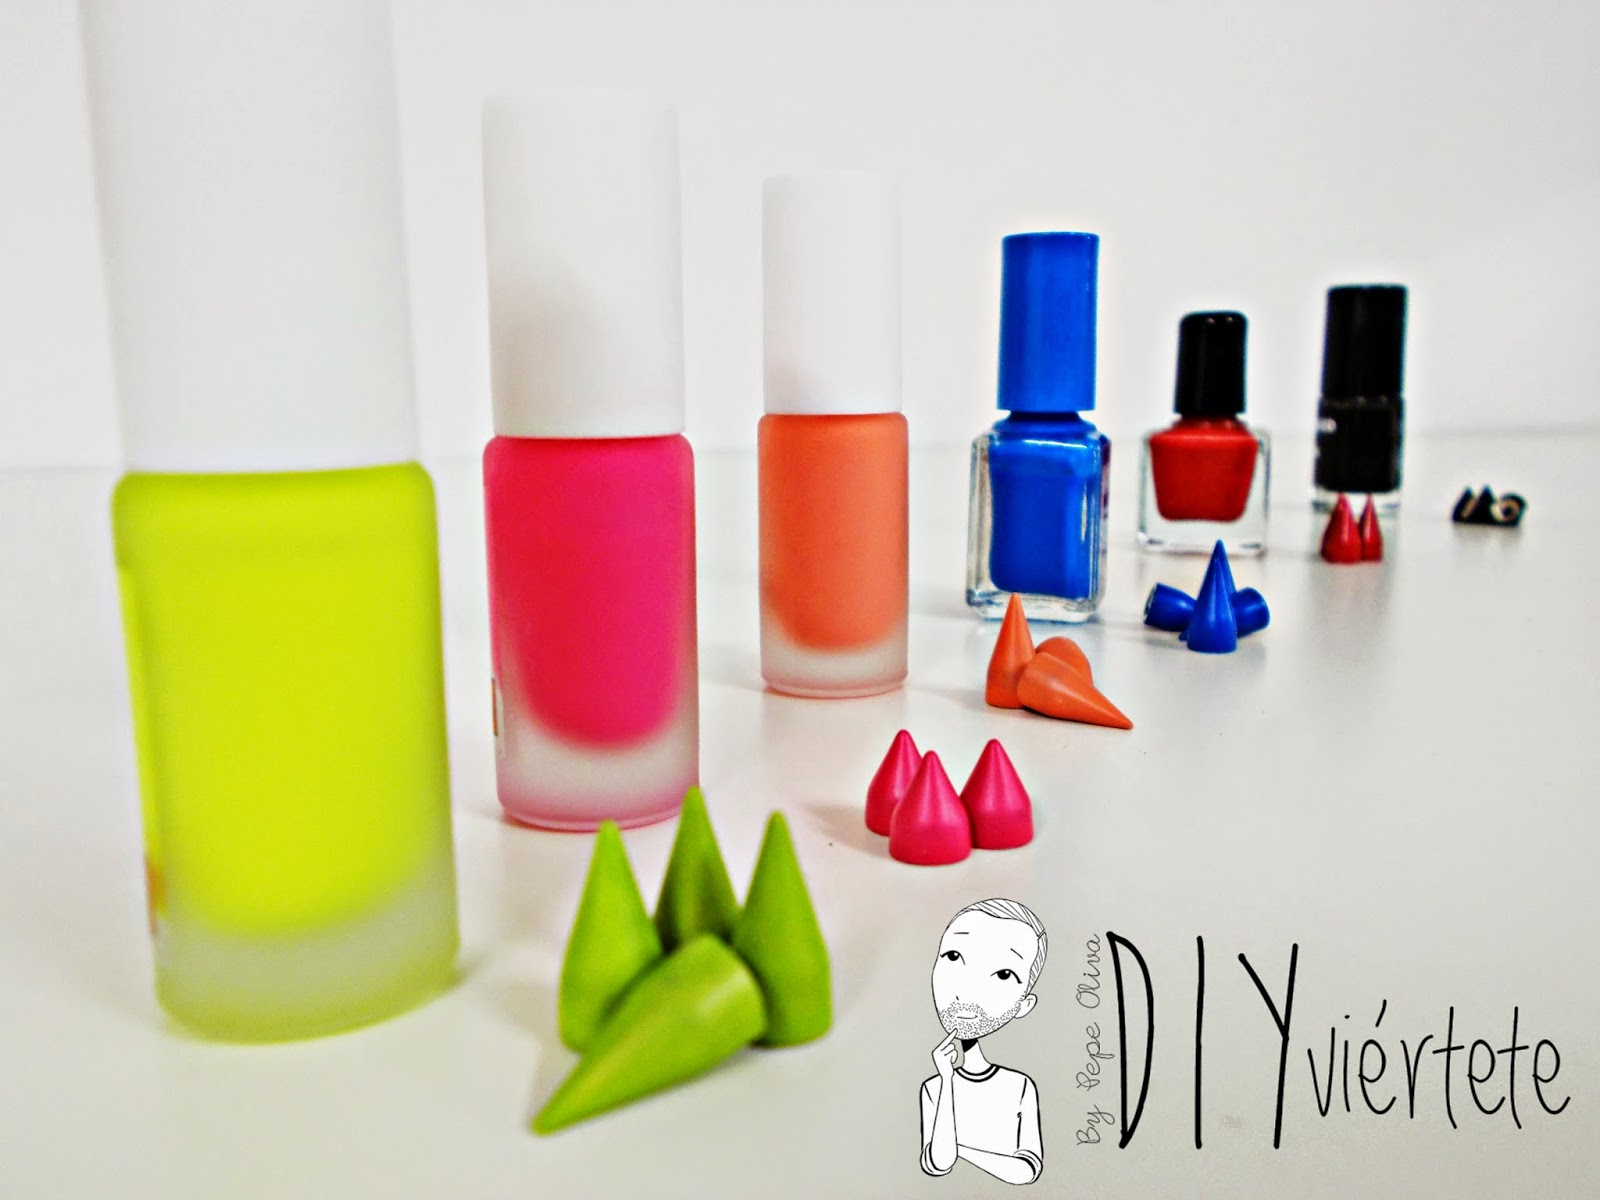 DIY-zapatillas-tunear-customizar-CHRISTIAN-LOUBOUTIN-zapatos-pinchos-esmaltes-pinta uñas-colores-6